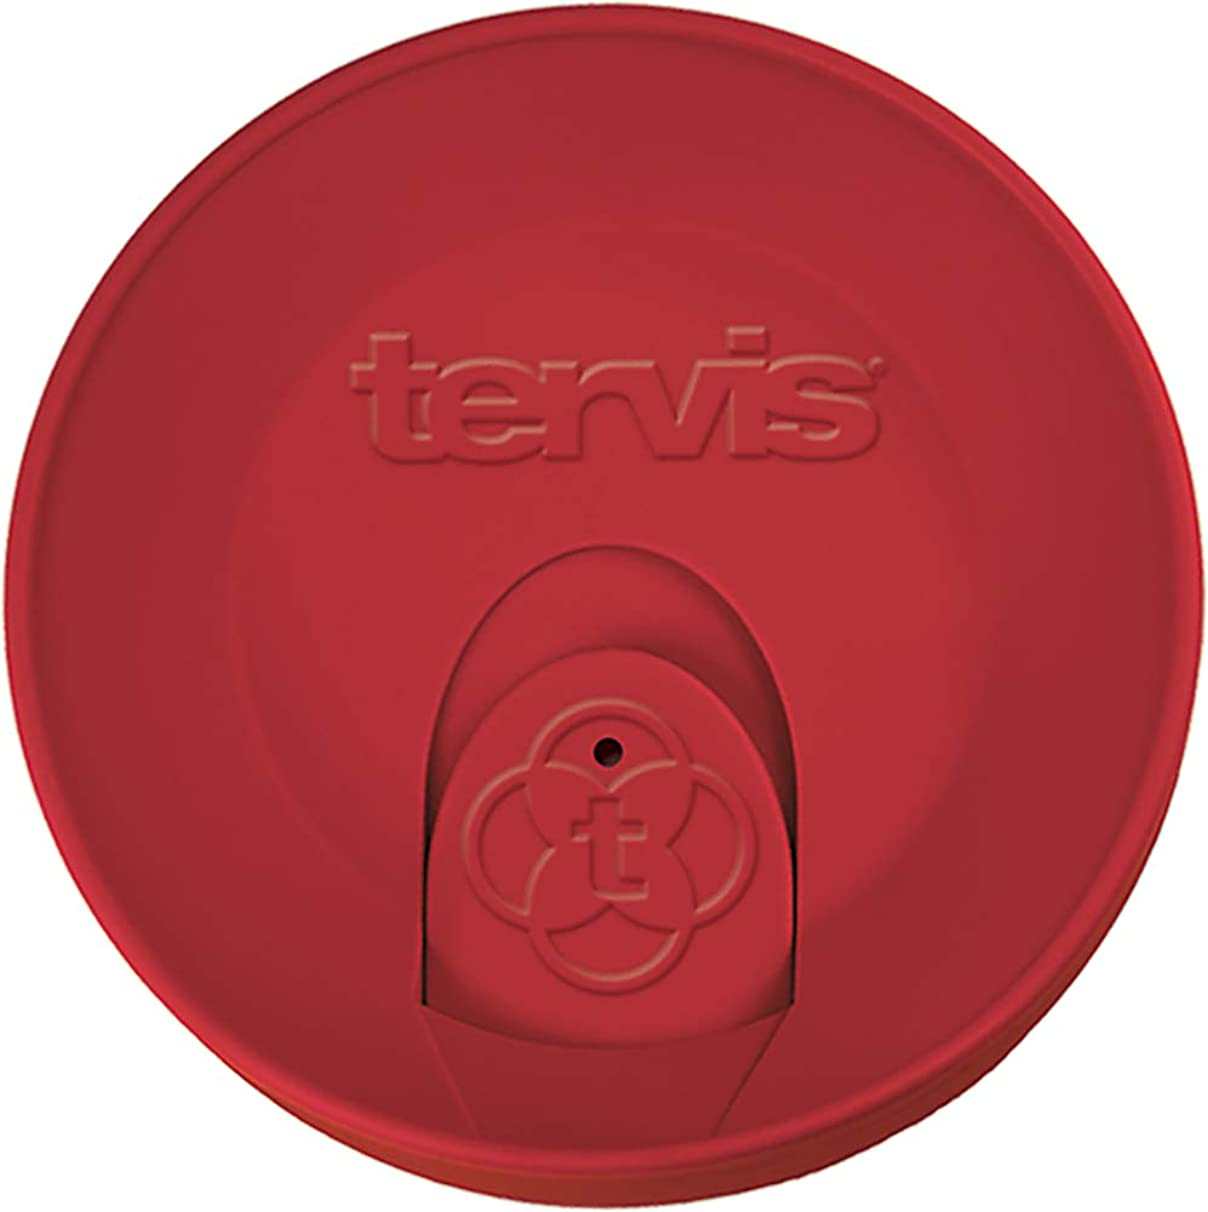 Tervis 1028405 Travel Lid, 24 oz, Red